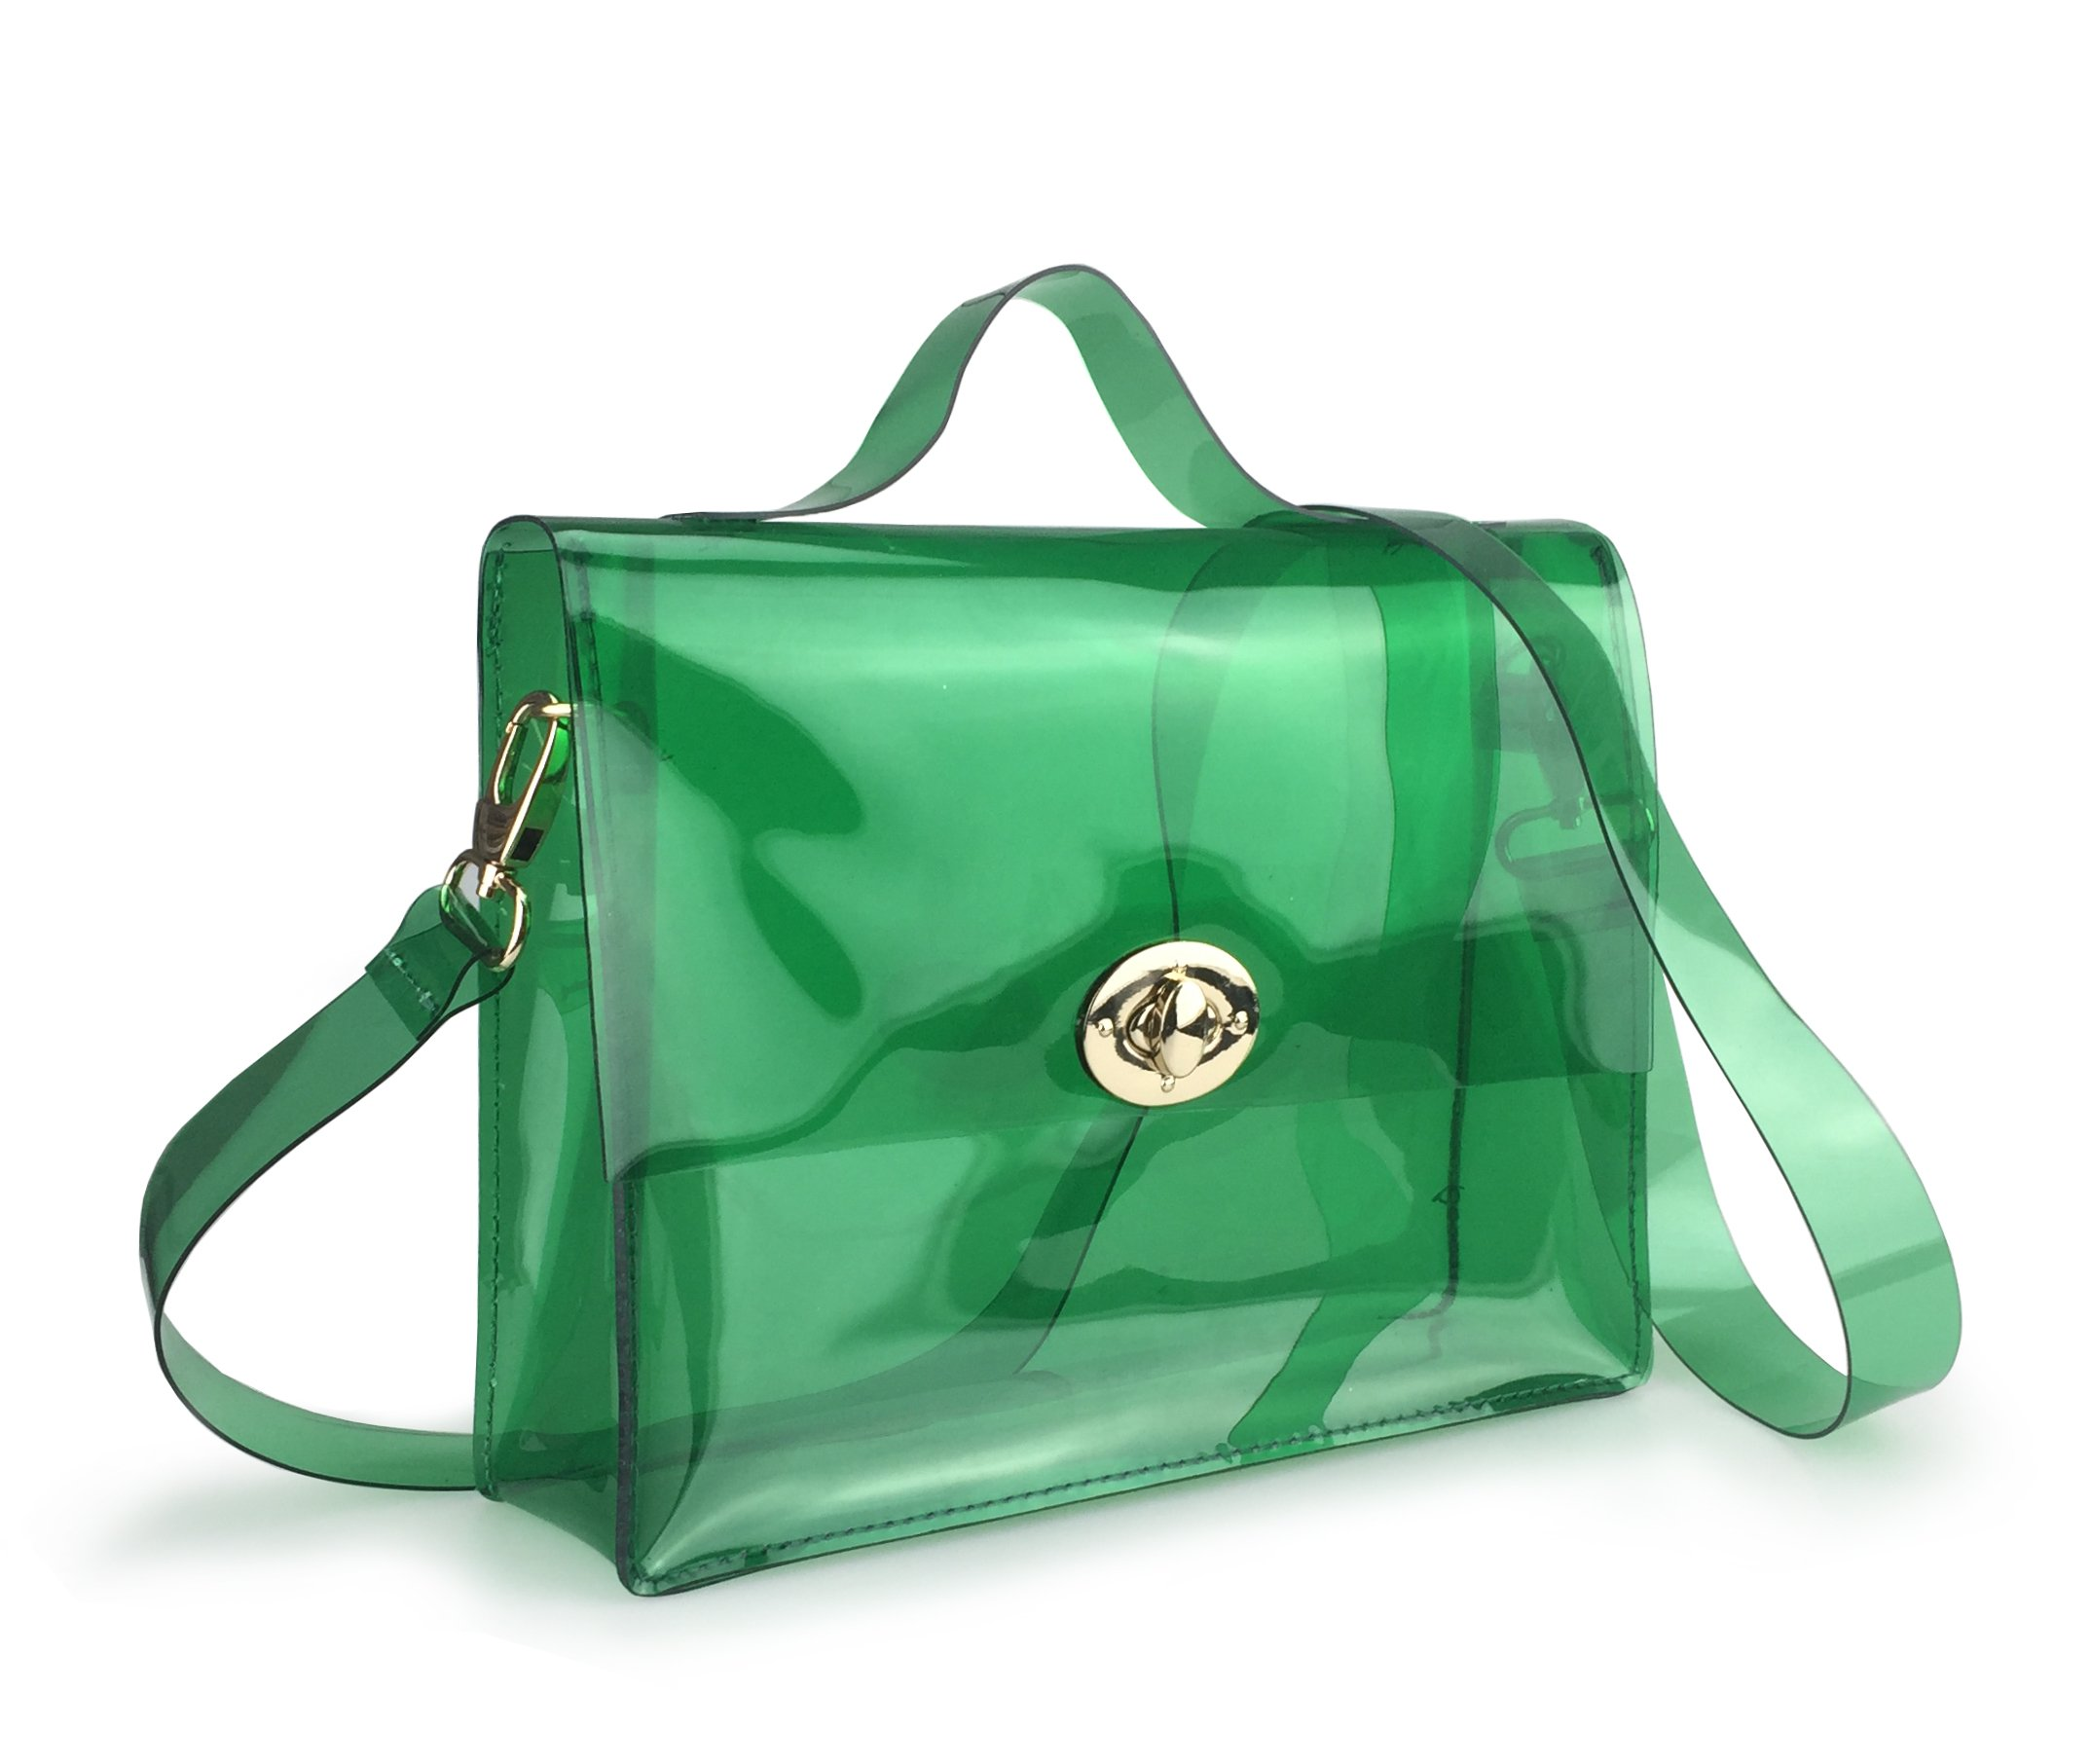 Clear Bag with Turn Lock Closure Cross Body Bag Women's Satchel Transparent Messenger Shoulder Handbag (Green) by Hoxis (Image #2)